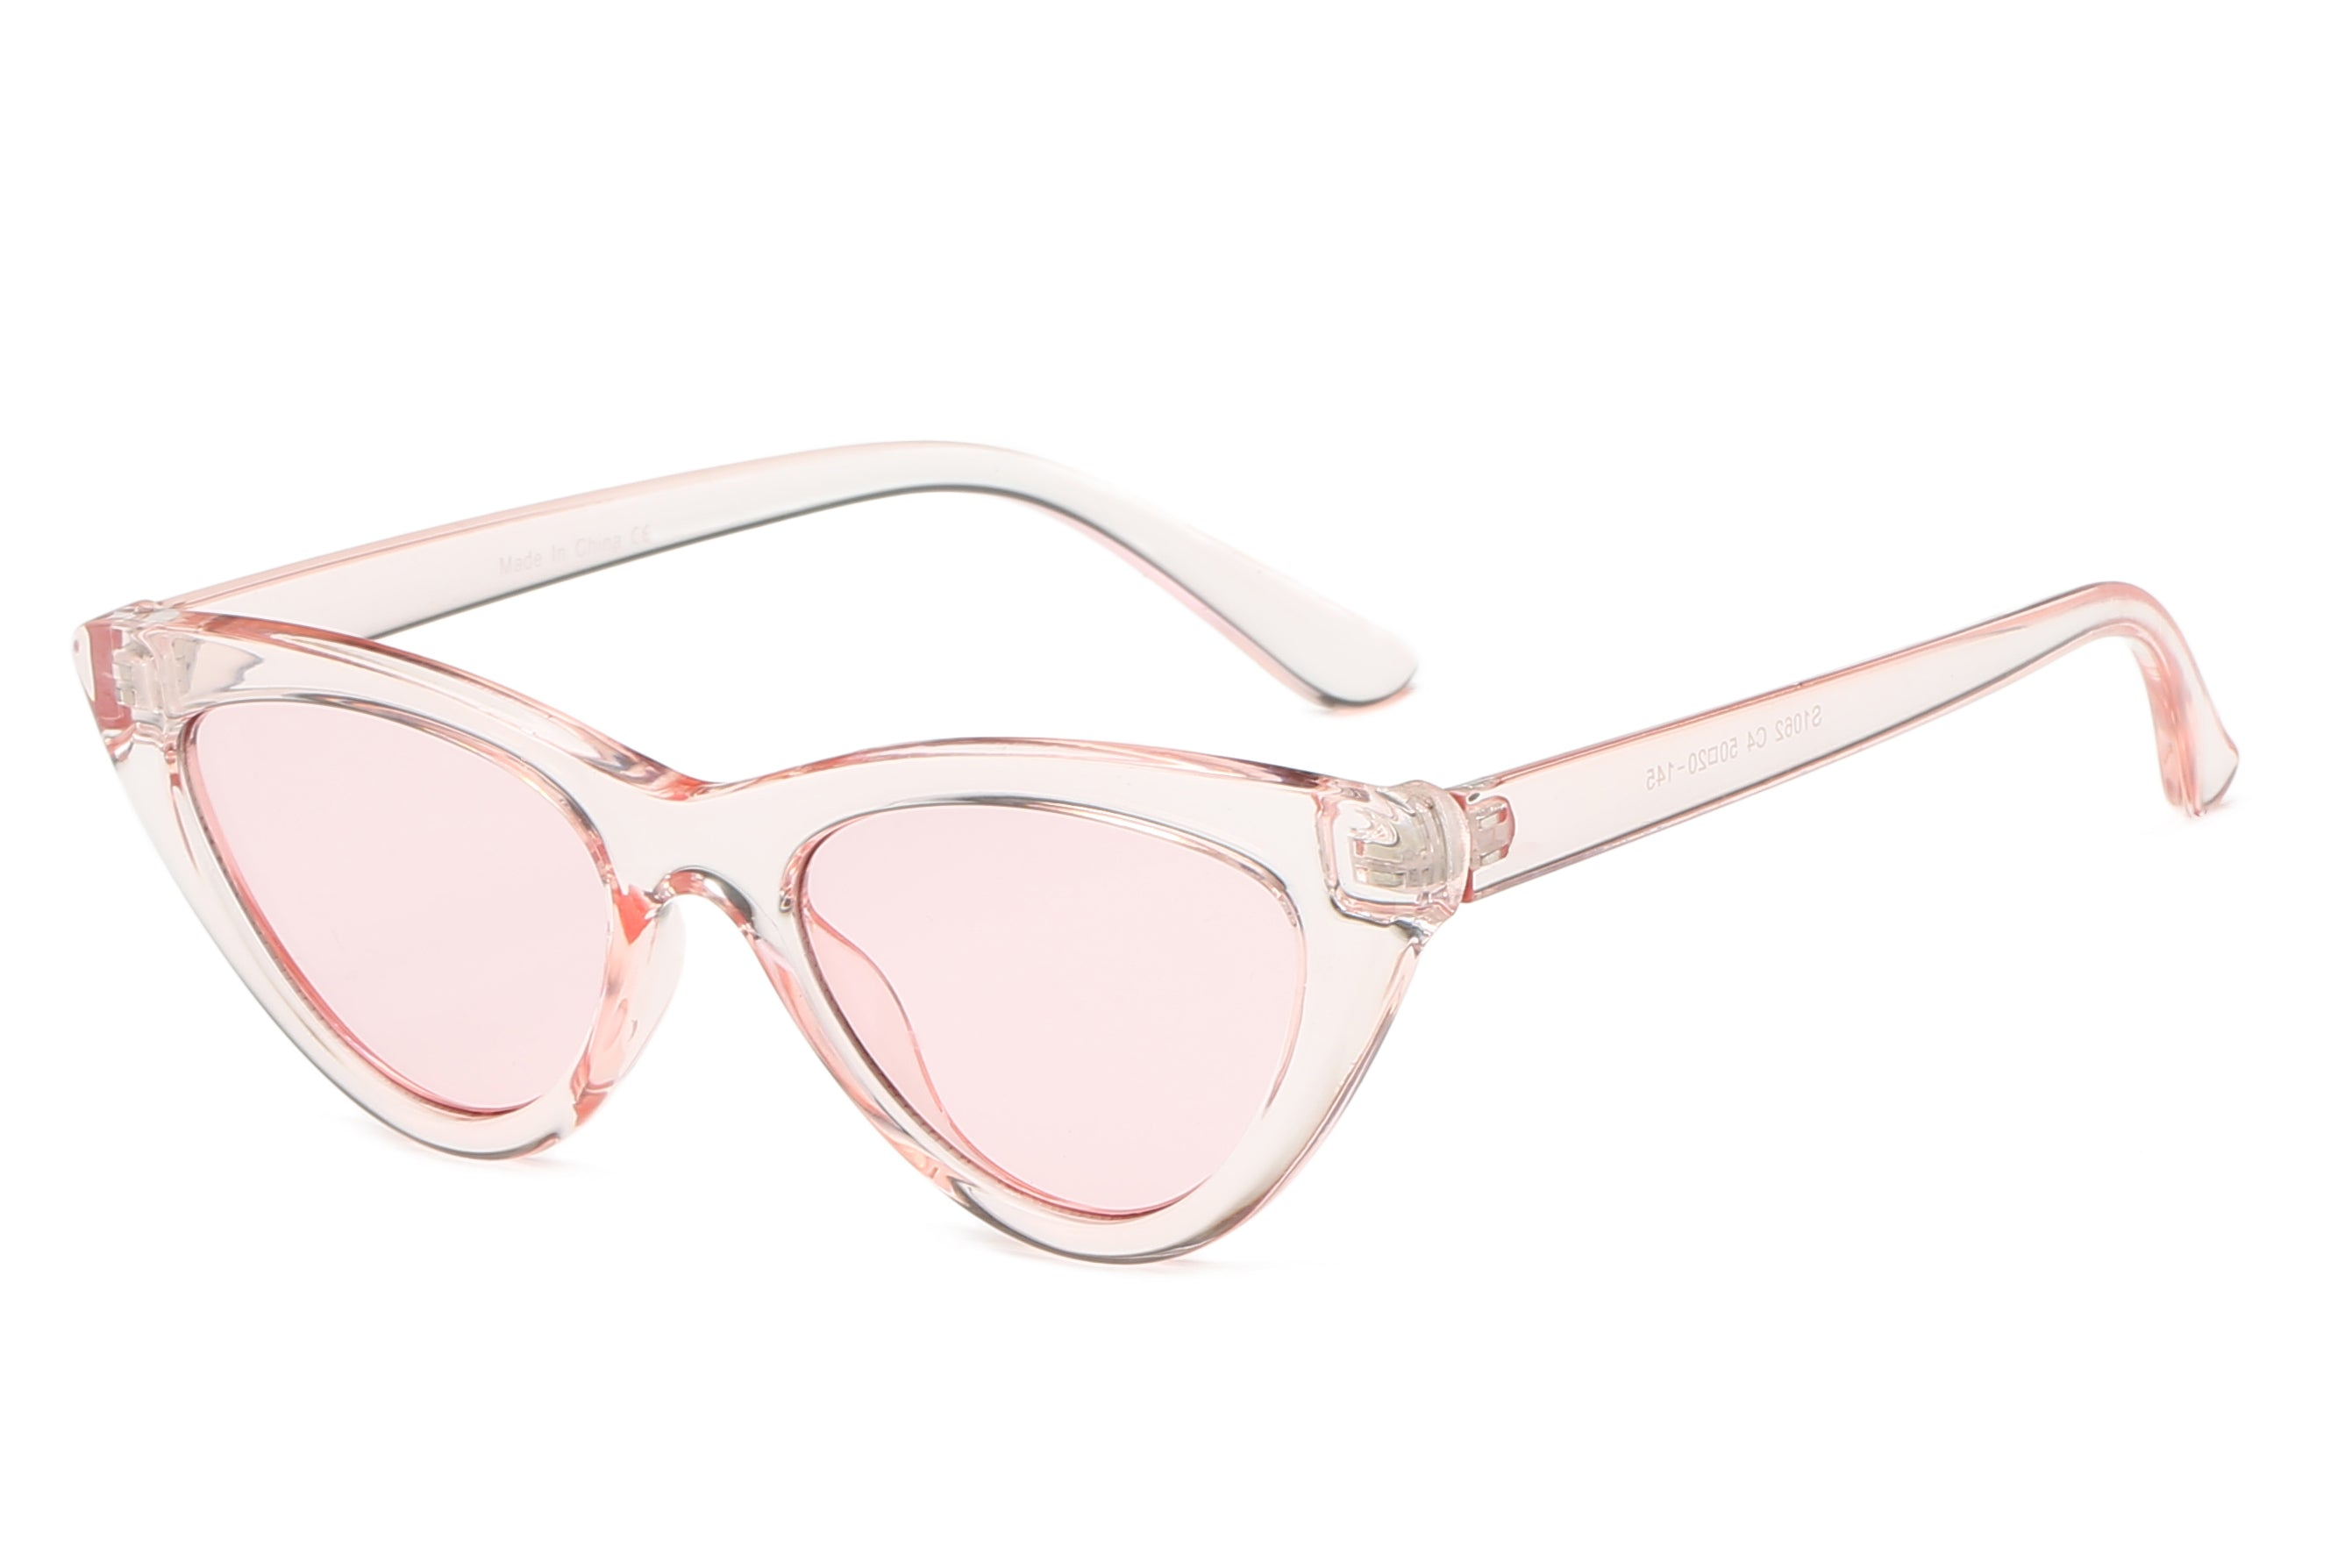 women retro vintage cat eye sunglasses with clear pink frame and tinted pink lens